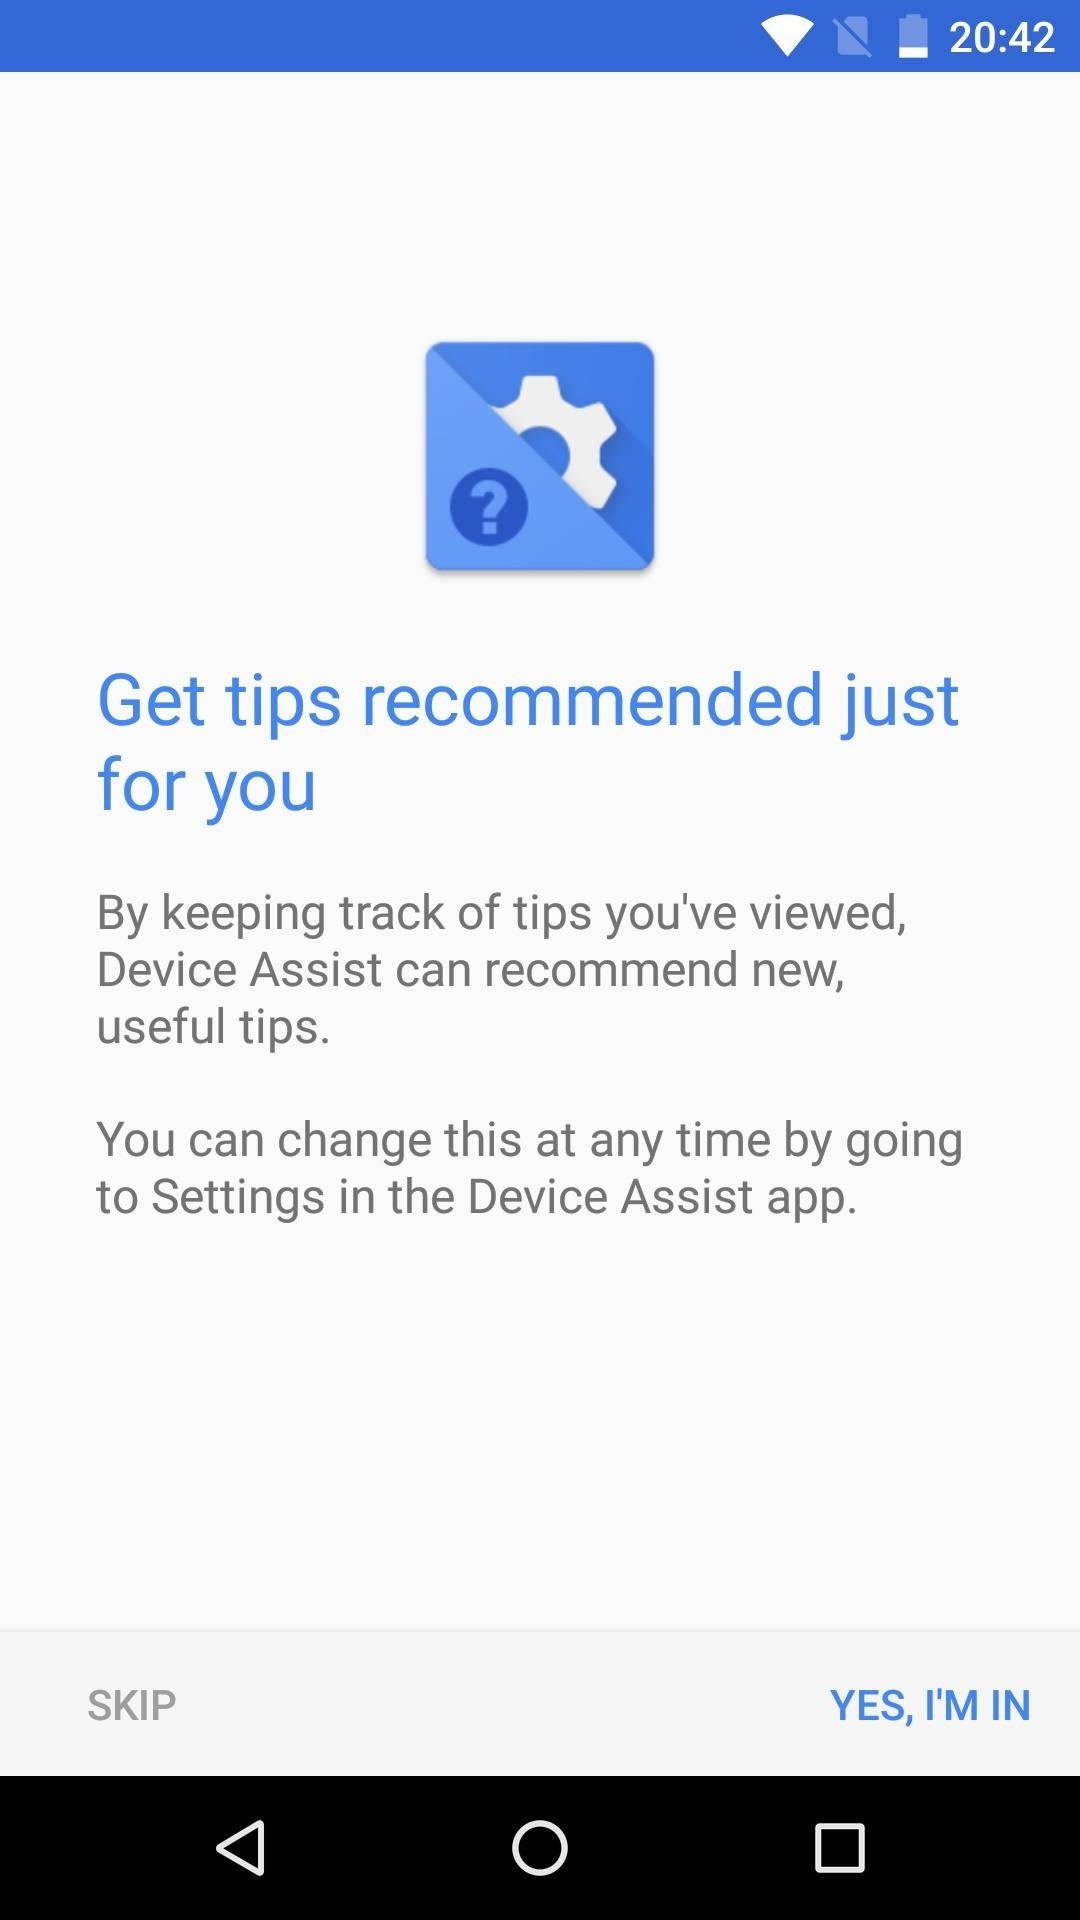 This Google App Makes Sure Your Device Runs Smooth All the Time